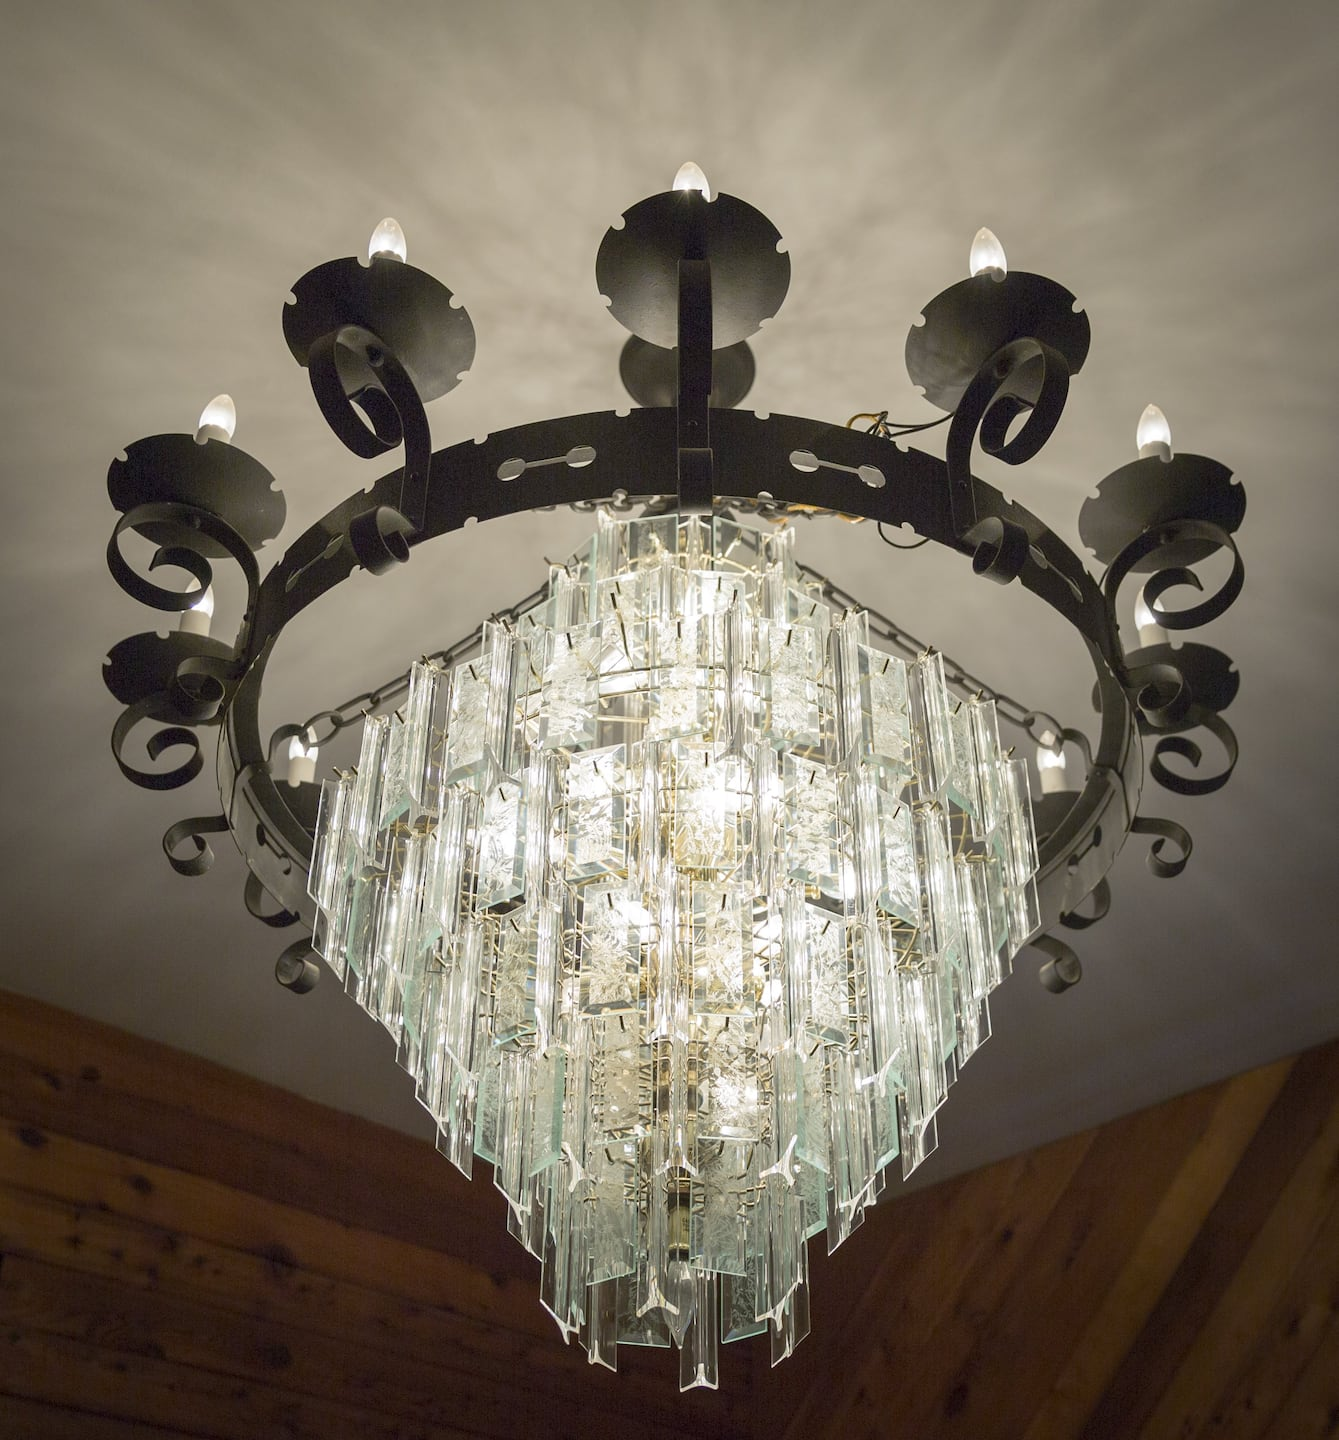 A metal and glass chandelier